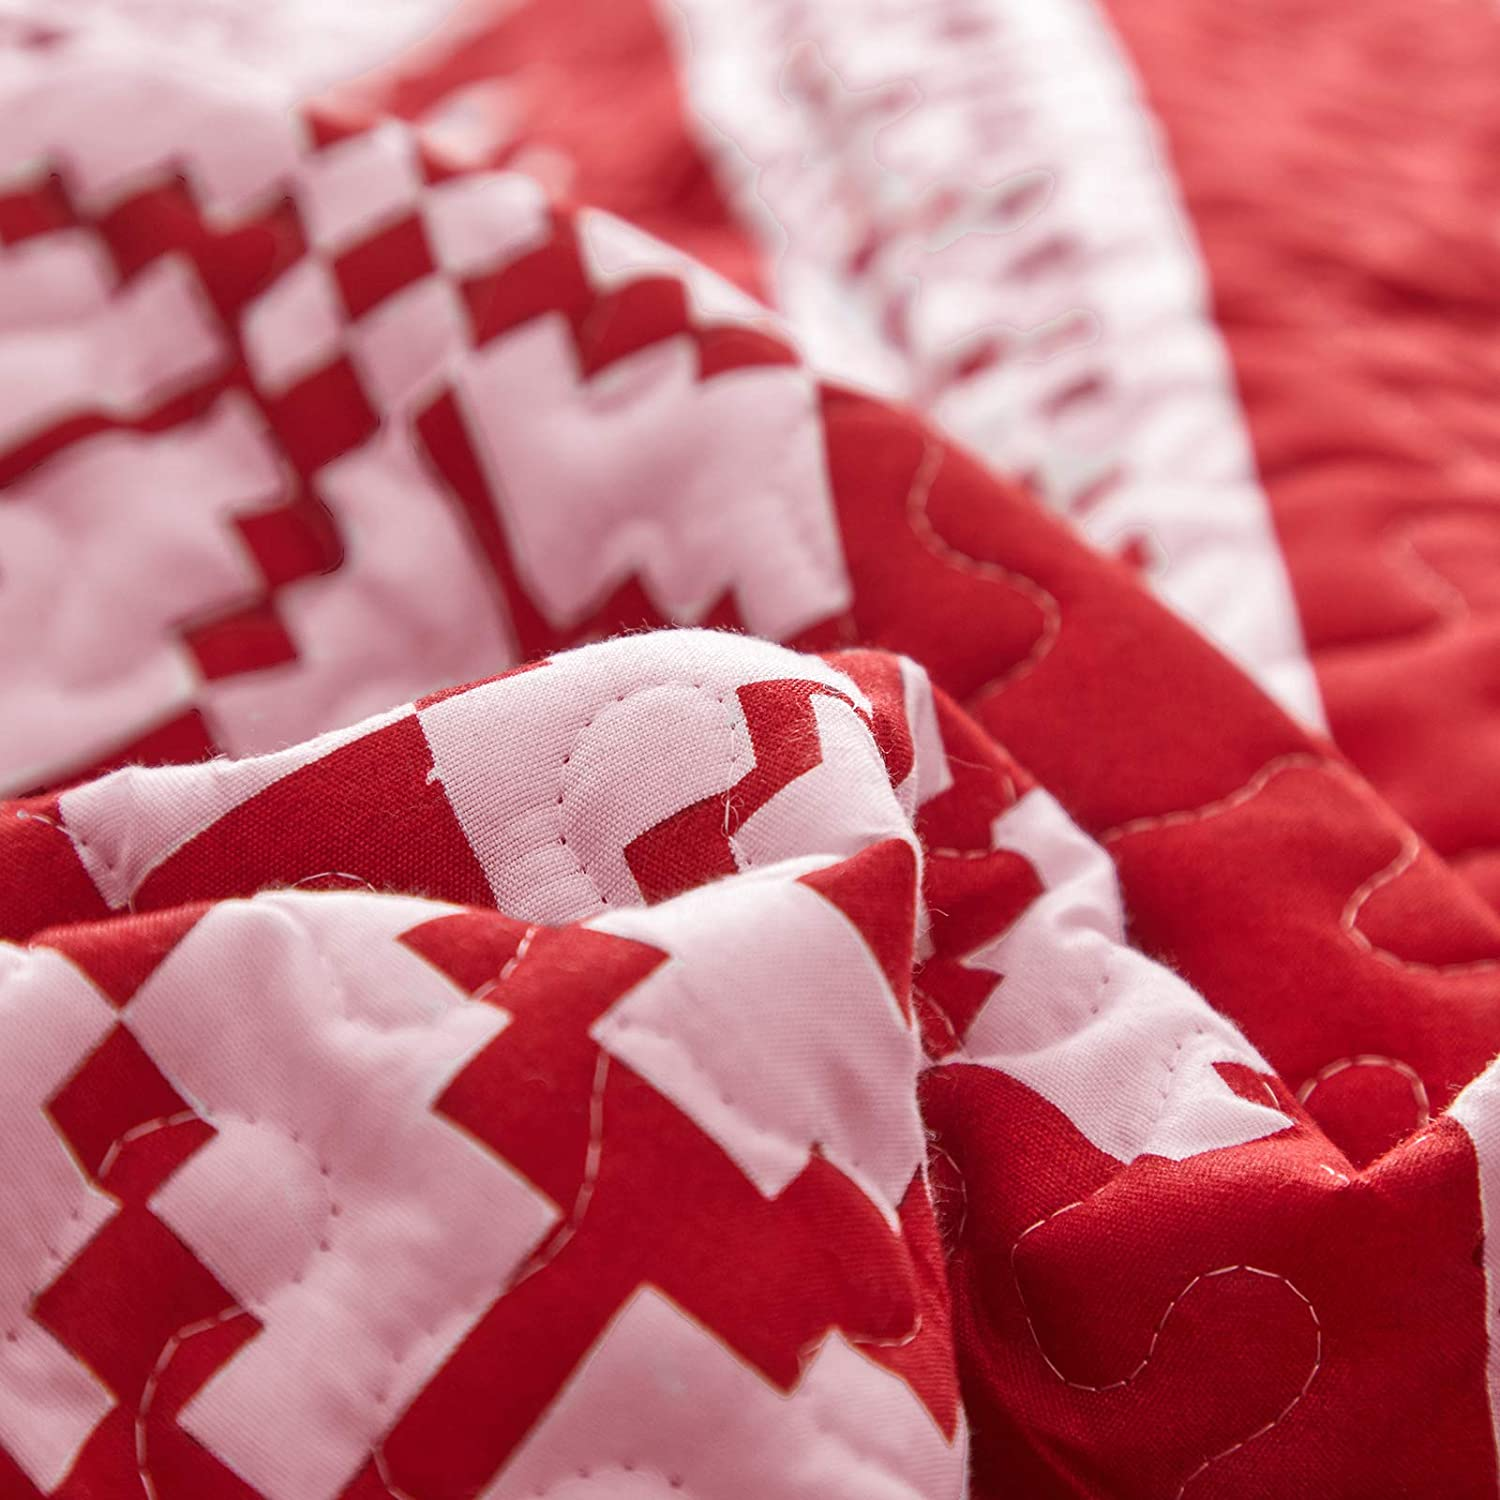 Uozzi Bedding 3 Pieces Quilt Set Christmas Red and White Snowflake Full Queen Size 88x88 Soft Microfiber Lightweight New Year Holiday Style Reversible Coverlet Bedspread